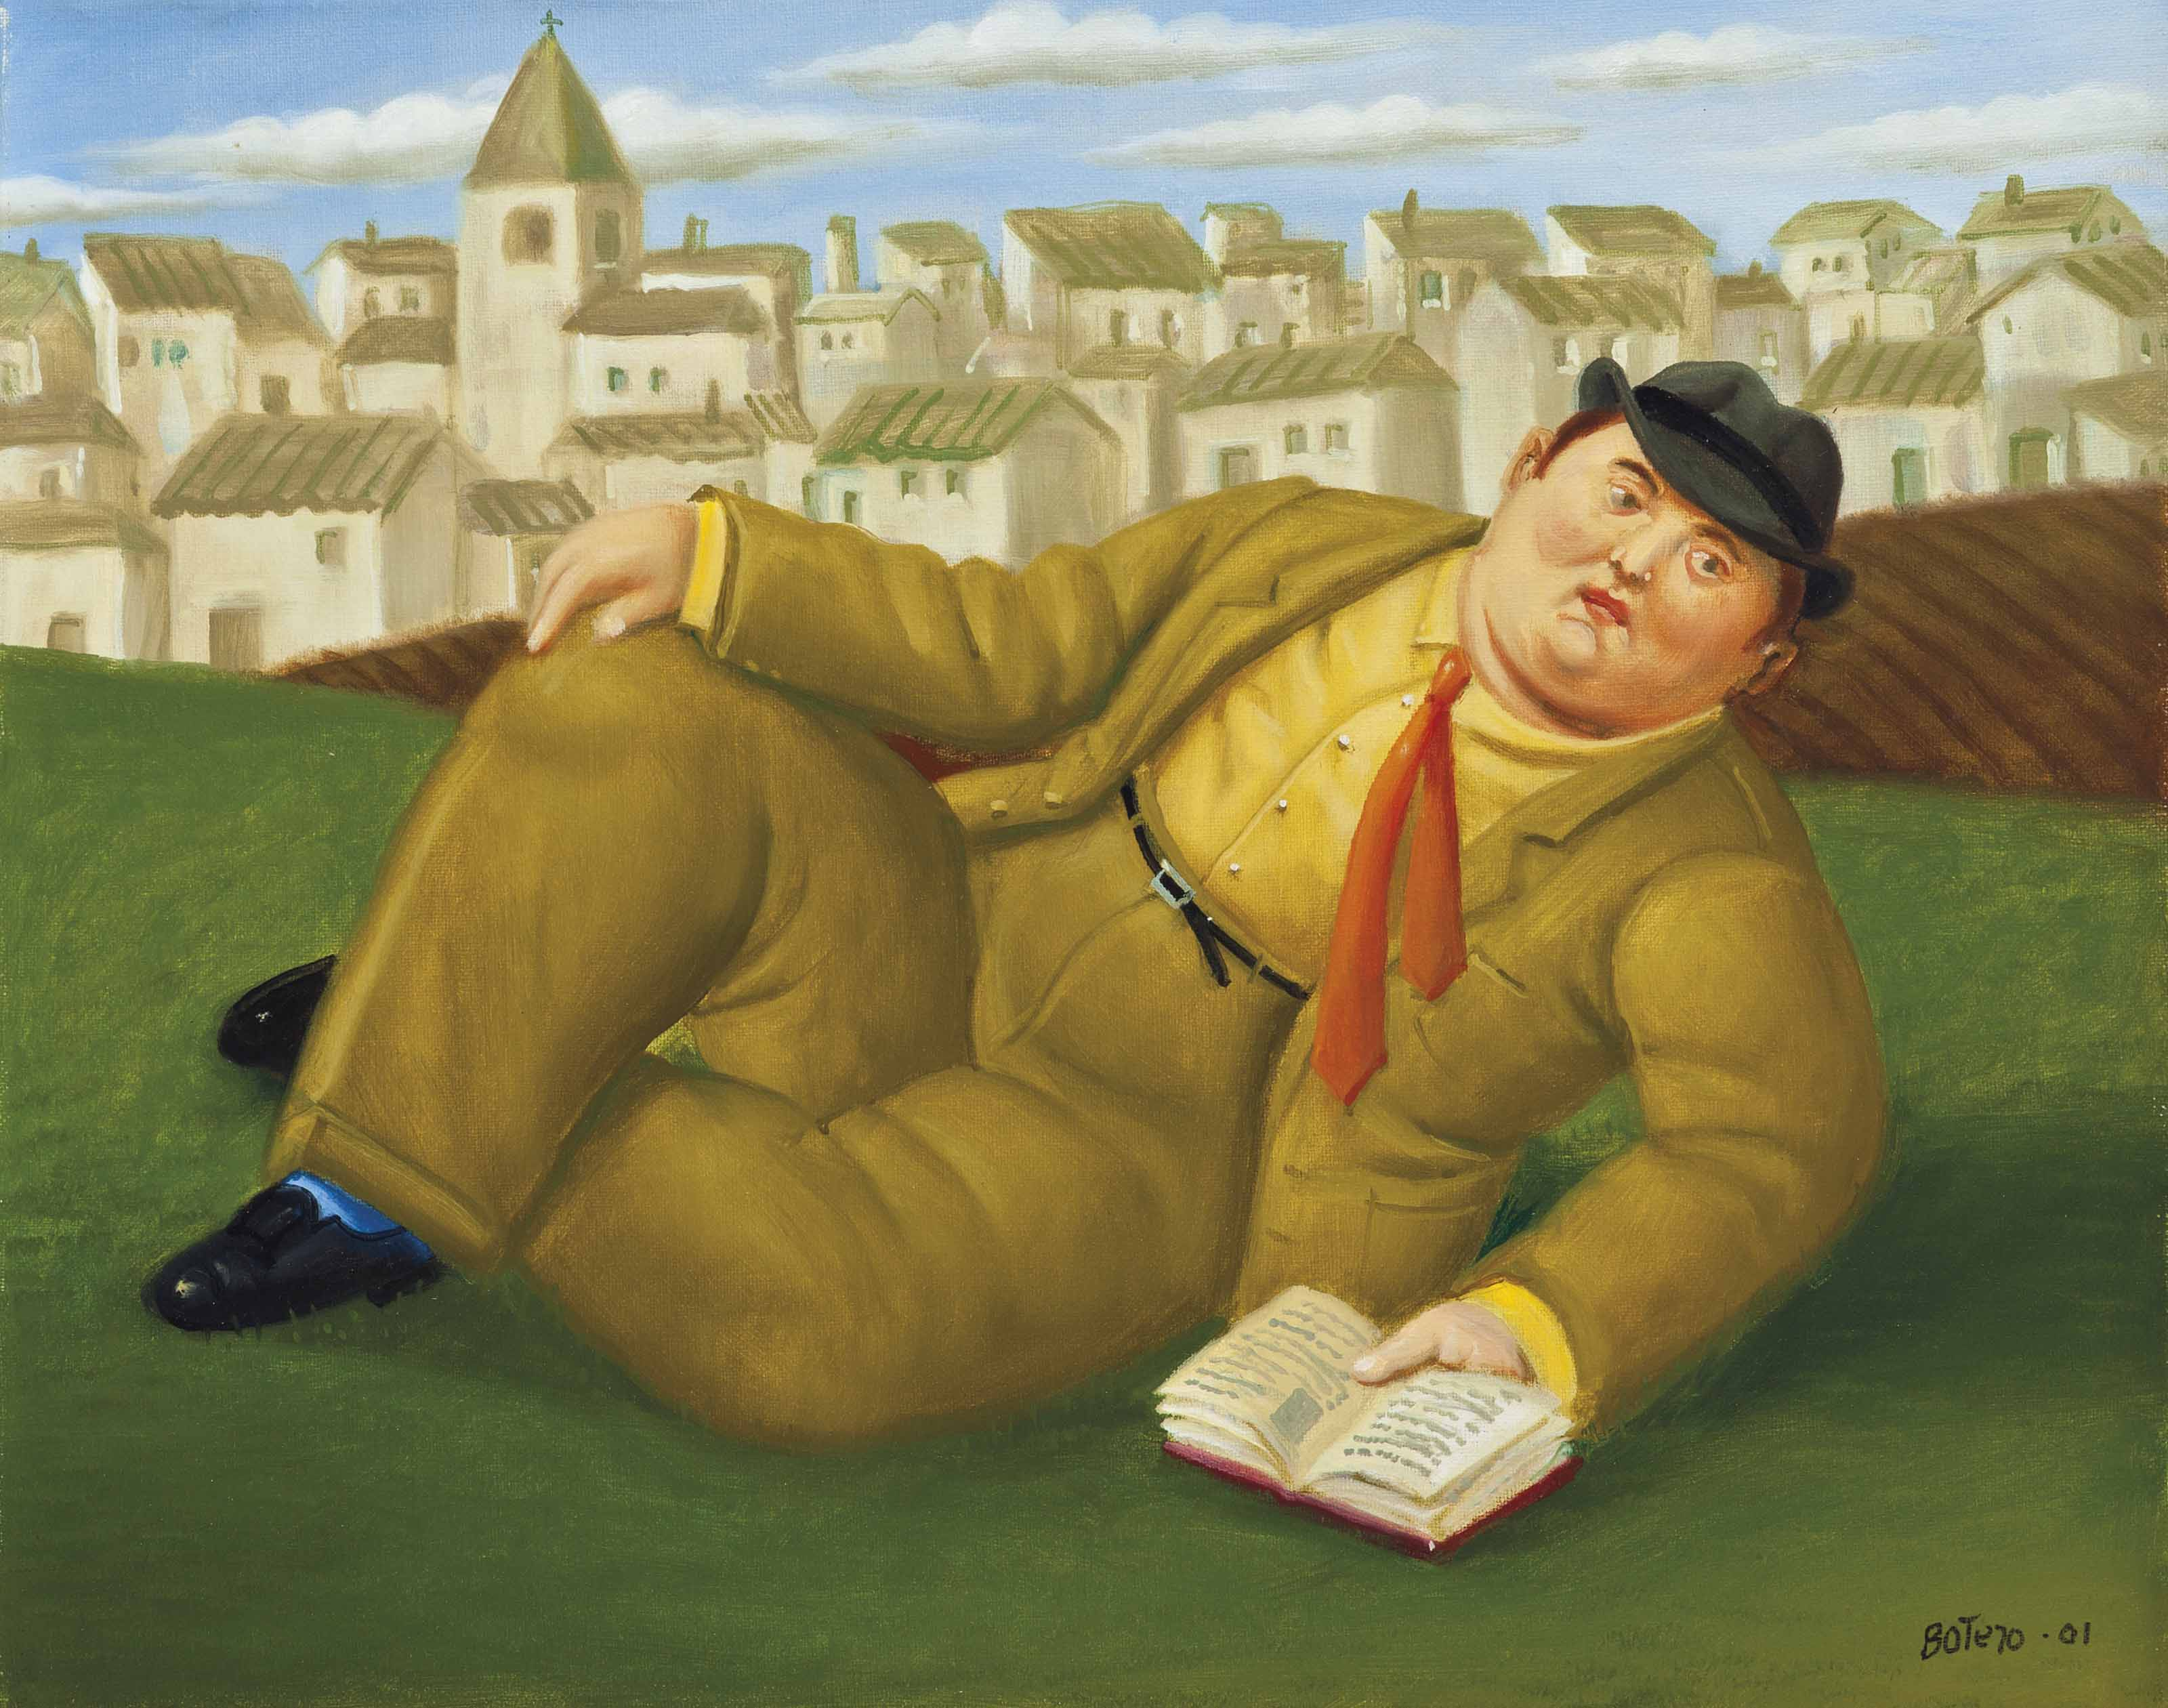 Fernando Botero (b. 1932) | Man with a Book | 2000s, Paintings | Christie's